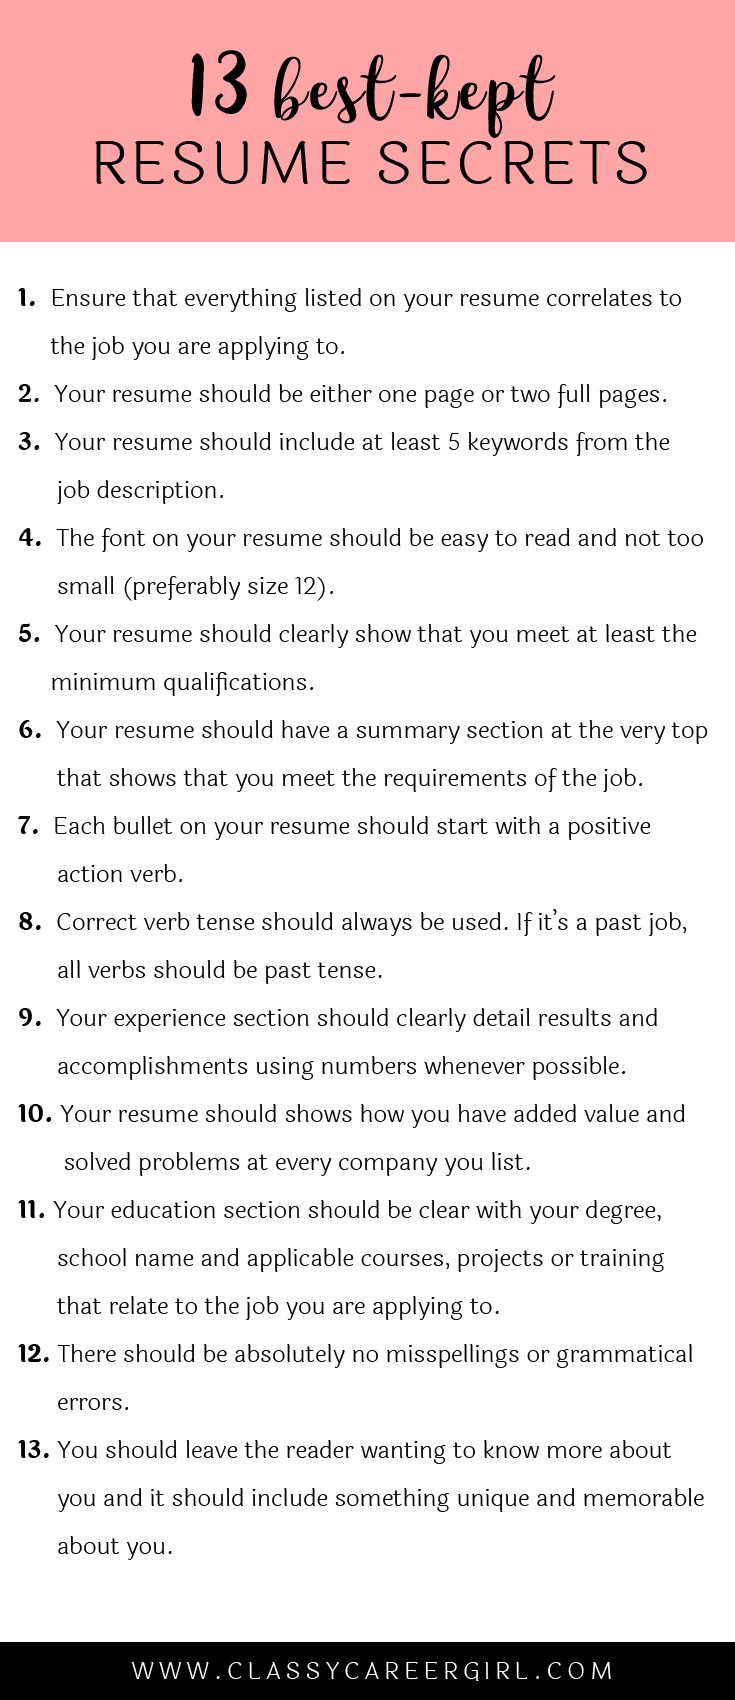 Opposenewapstandardsus  Unusual  Ideas About Resume On Pinterest  Cv Format Resume Cv And  With Fetching Some Hiring Managers Will Toss Your Resume Out If You Dont Know These  With Extraordinary Cover Letter And Resume Example Also Resume Rejection Letter In Addition Adjectives To Use On A Resume And Ups Resume As Well As High School Diploma Resume Additionally Sap Fico Resume From Pinterestcom With Opposenewapstandardsus  Fetching  Ideas About Resume On Pinterest  Cv Format Resume Cv And  With Extraordinary Some Hiring Managers Will Toss Your Resume Out If You Dont Know These  And Unusual Cover Letter And Resume Example Also Resume Rejection Letter In Addition Adjectives To Use On A Resume From Pinterestcom